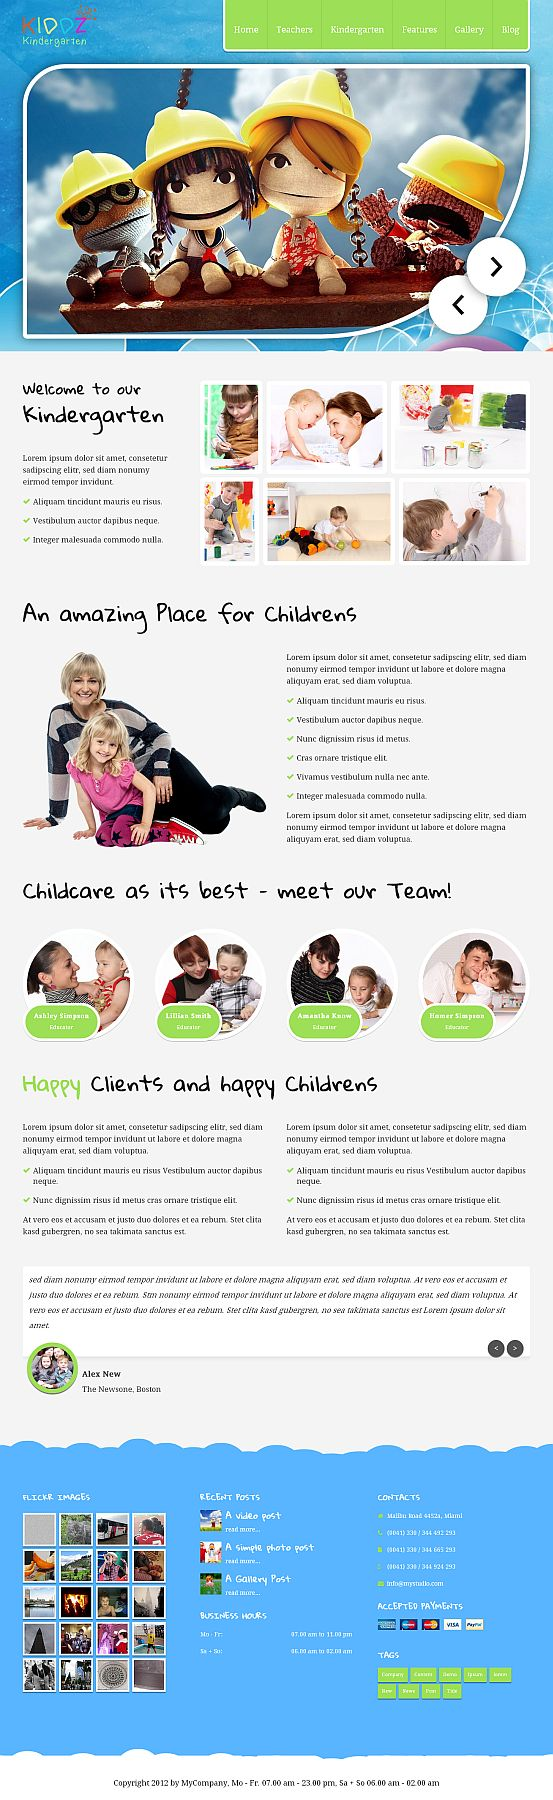 WordPress kindergarten theme, unique and responsive. Download and info here: http://7theme.net/preview/?theme=Kiddz